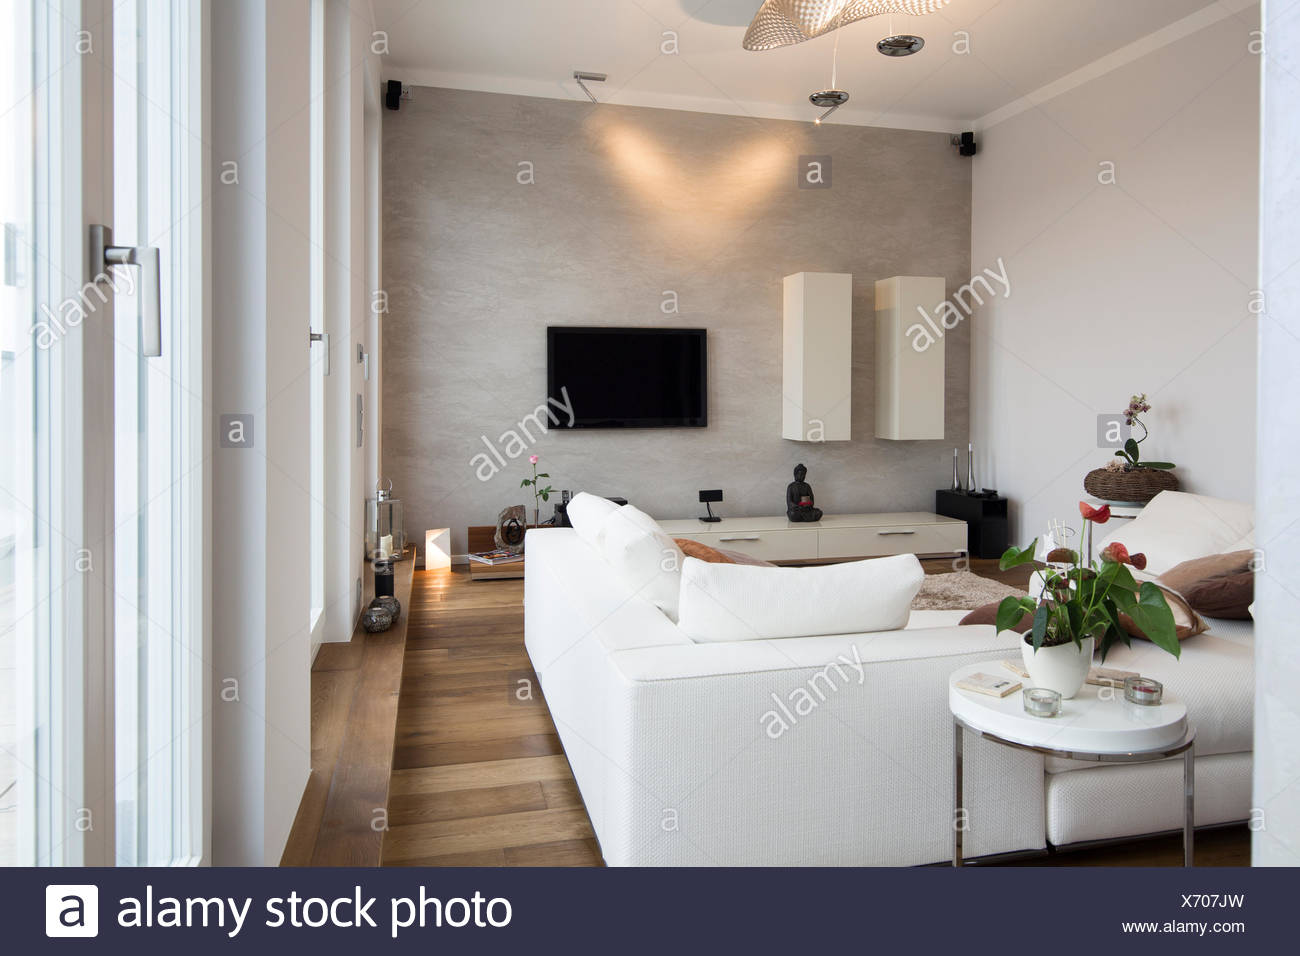 Interior Of Modern Flat Living Room With White Couch Stock Photo Alamy